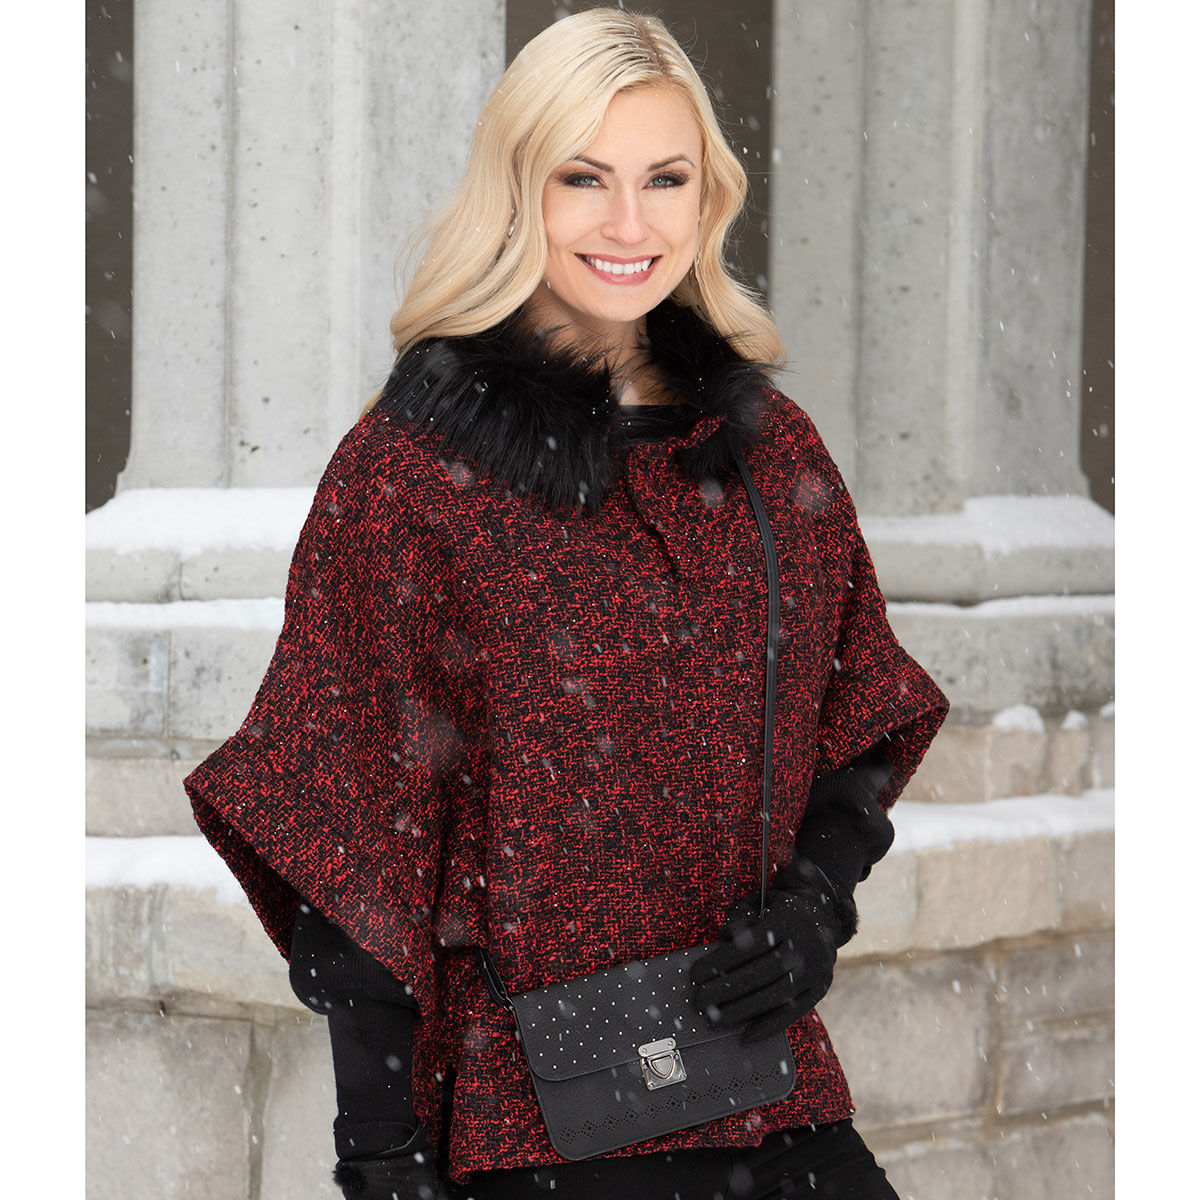 Black/Red Tunic with Fur Collar and Button Closure